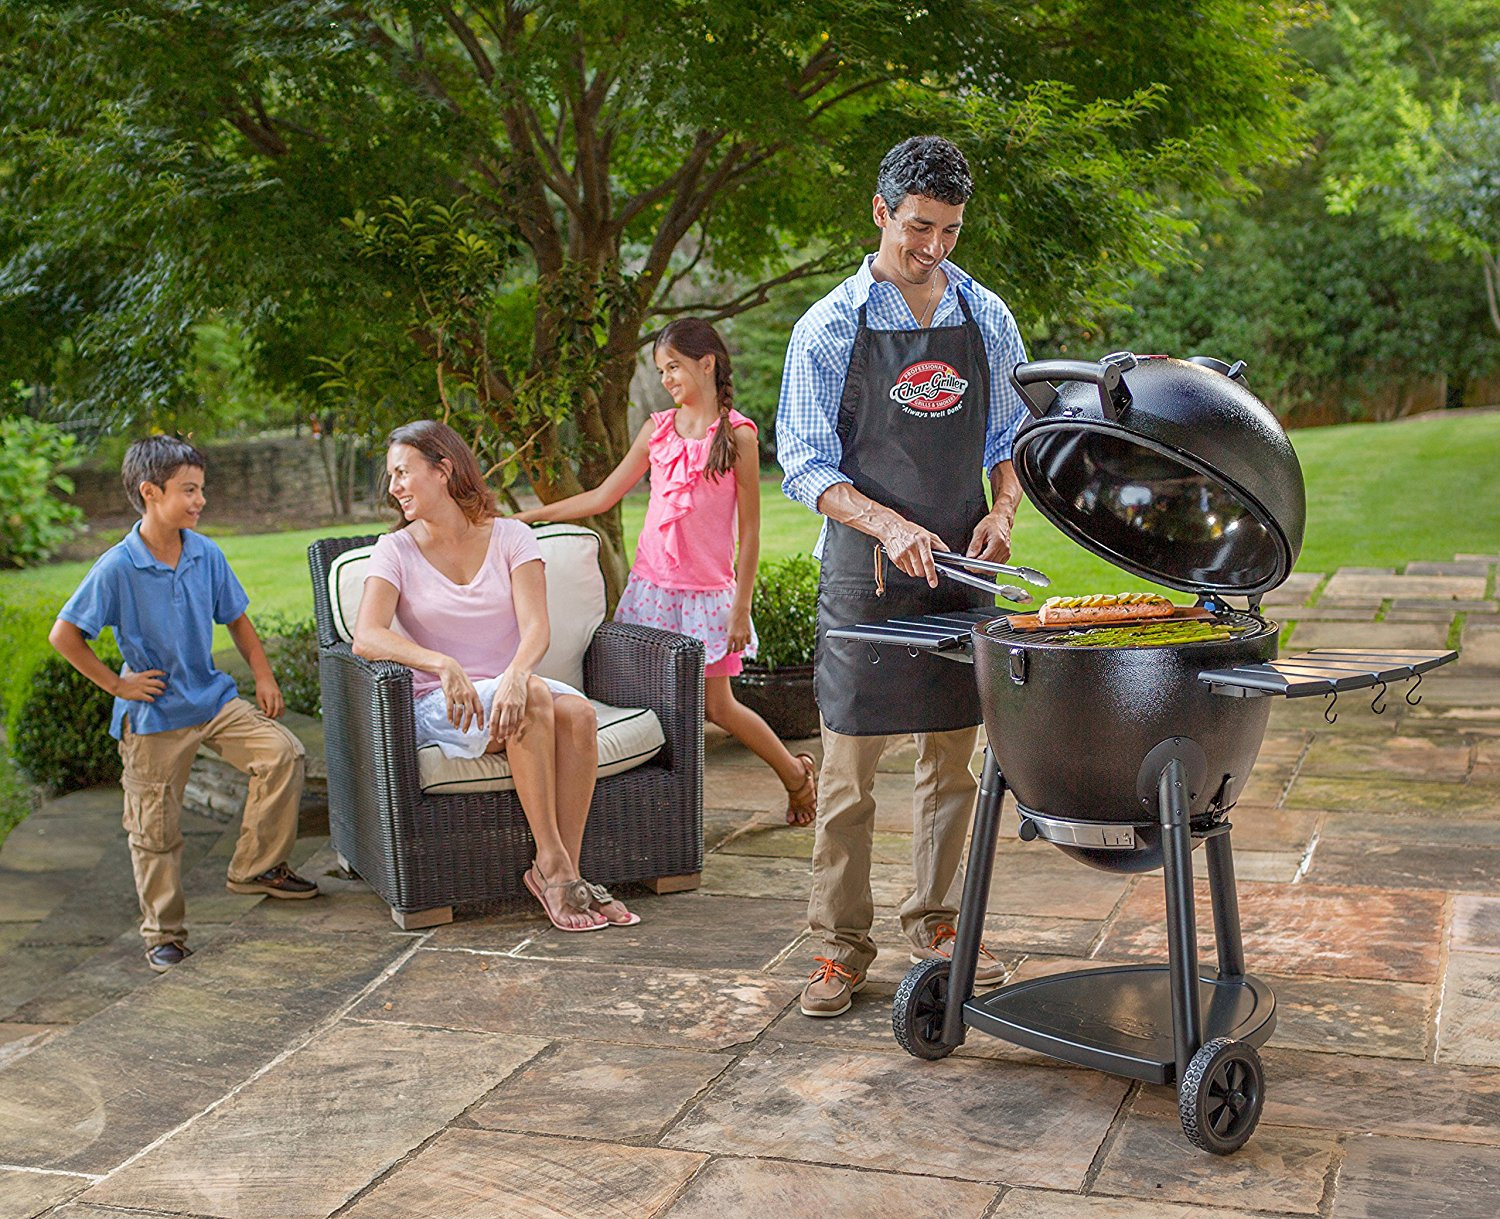 Grilling in your Backyard.